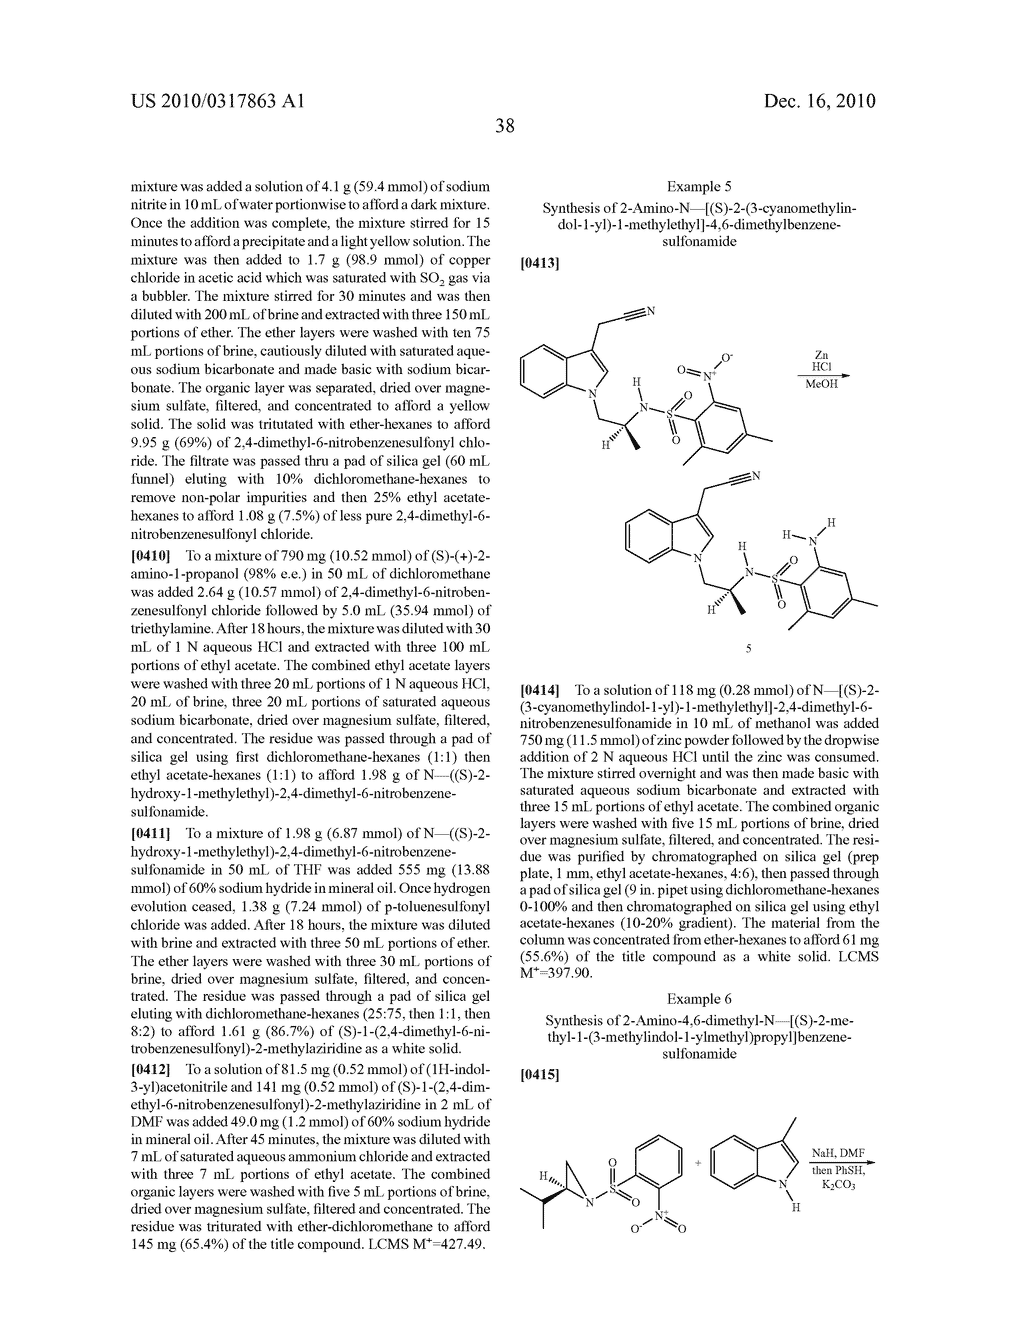 Glucocorticoid Mimetics, Methods of Making Them, Pharmaceutical Compositions and Uses Thereof - diagram, schematic, and image 39